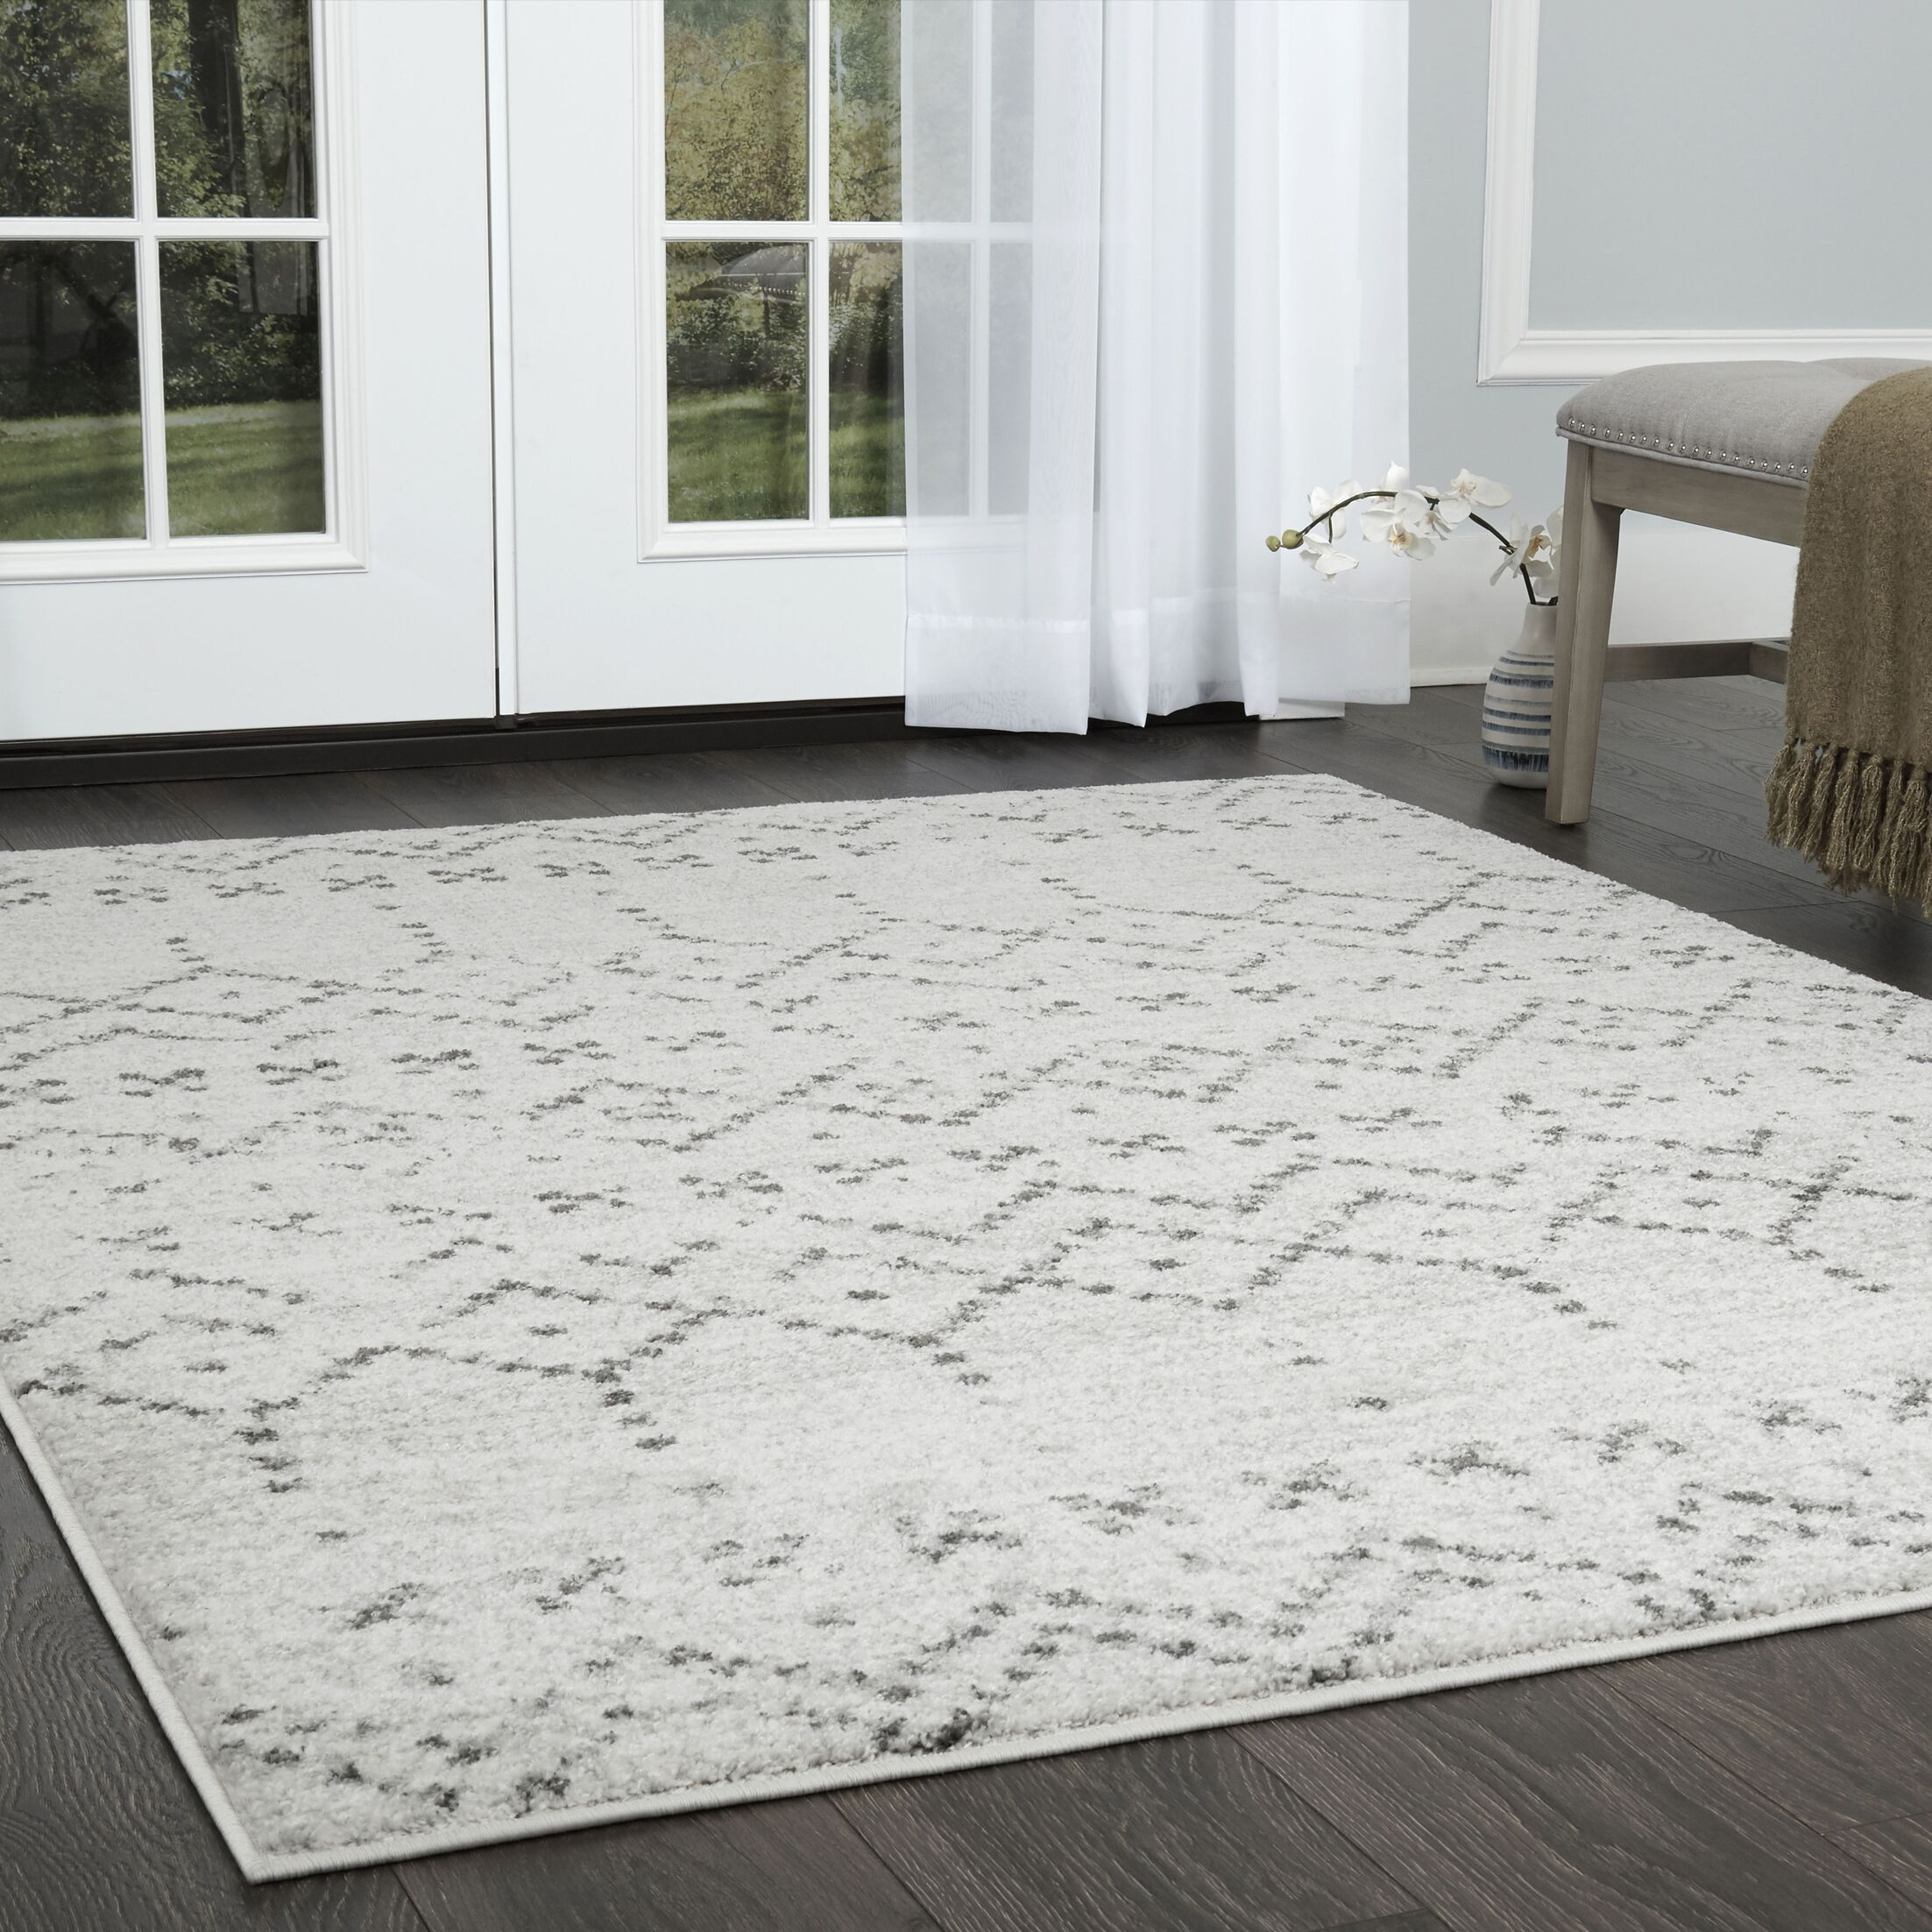 Spain Distressed Ivory Area Rug Rug Size: Rectangle 3'11